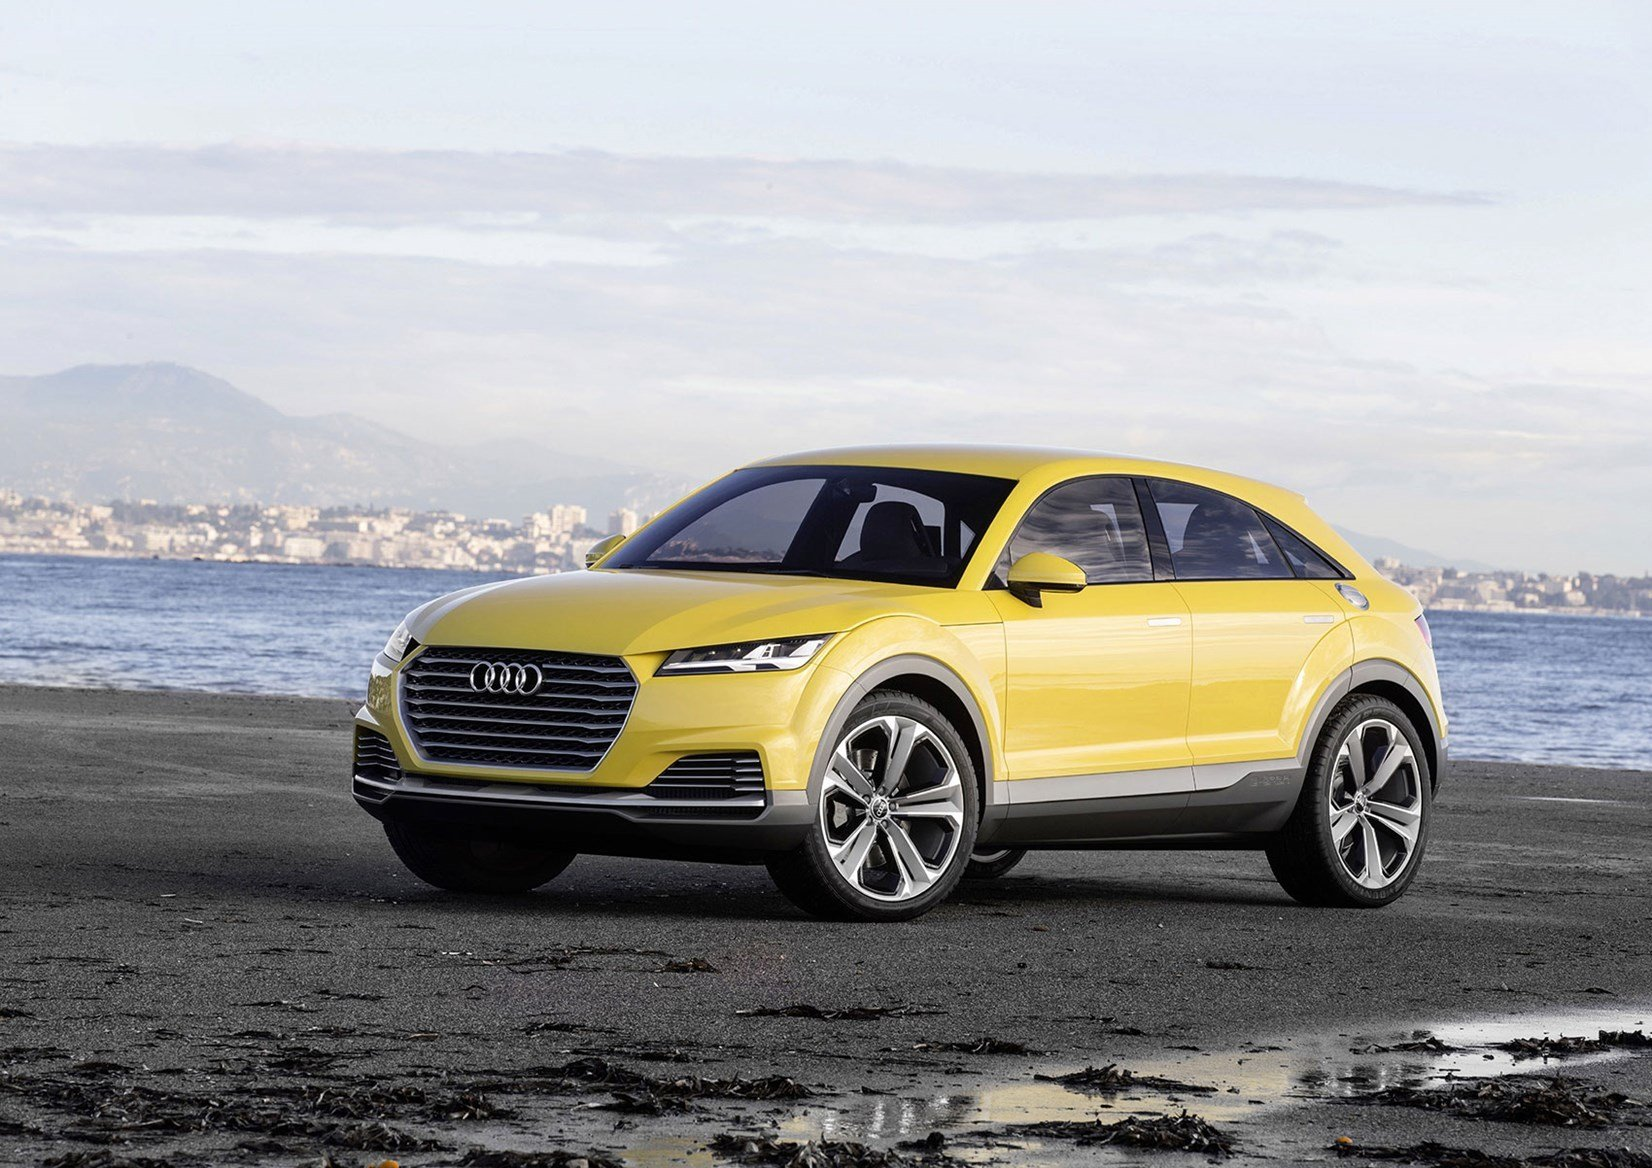 New Audi Q4 Set For Launch In 2019 And More Q Models On The On This Month